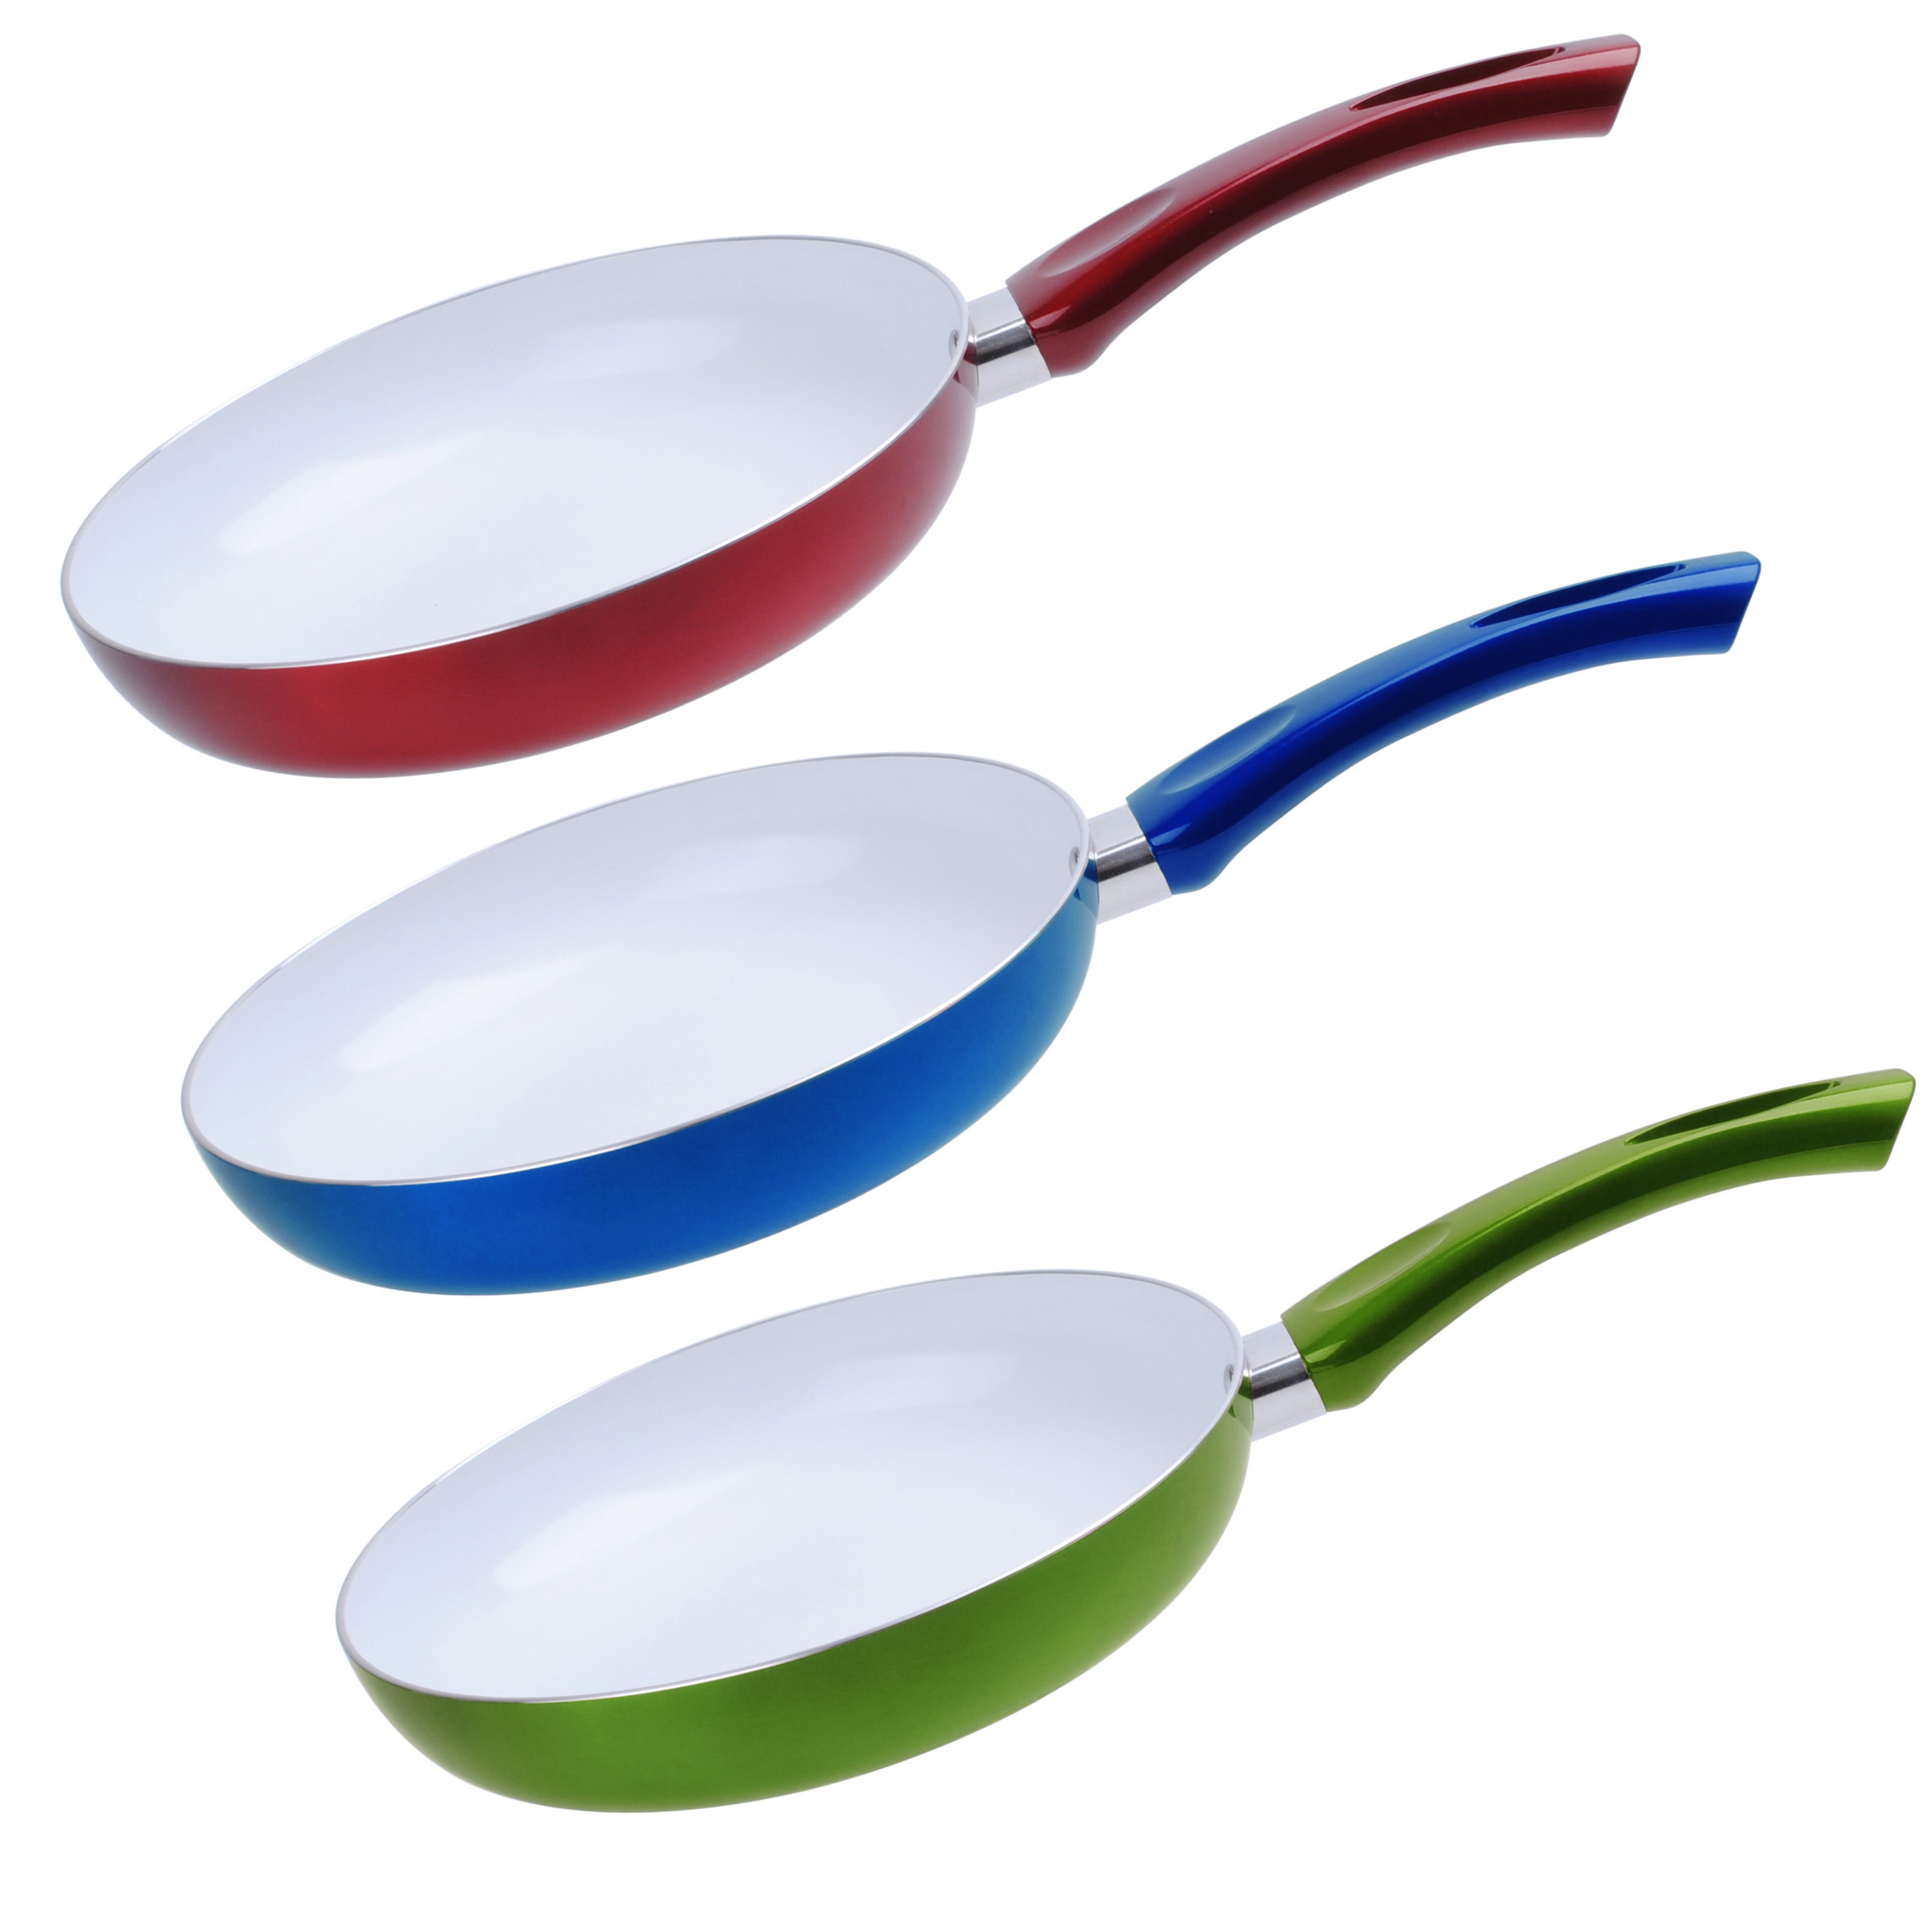 OEM Ceramic Non-stick 10-inch Fry Pan